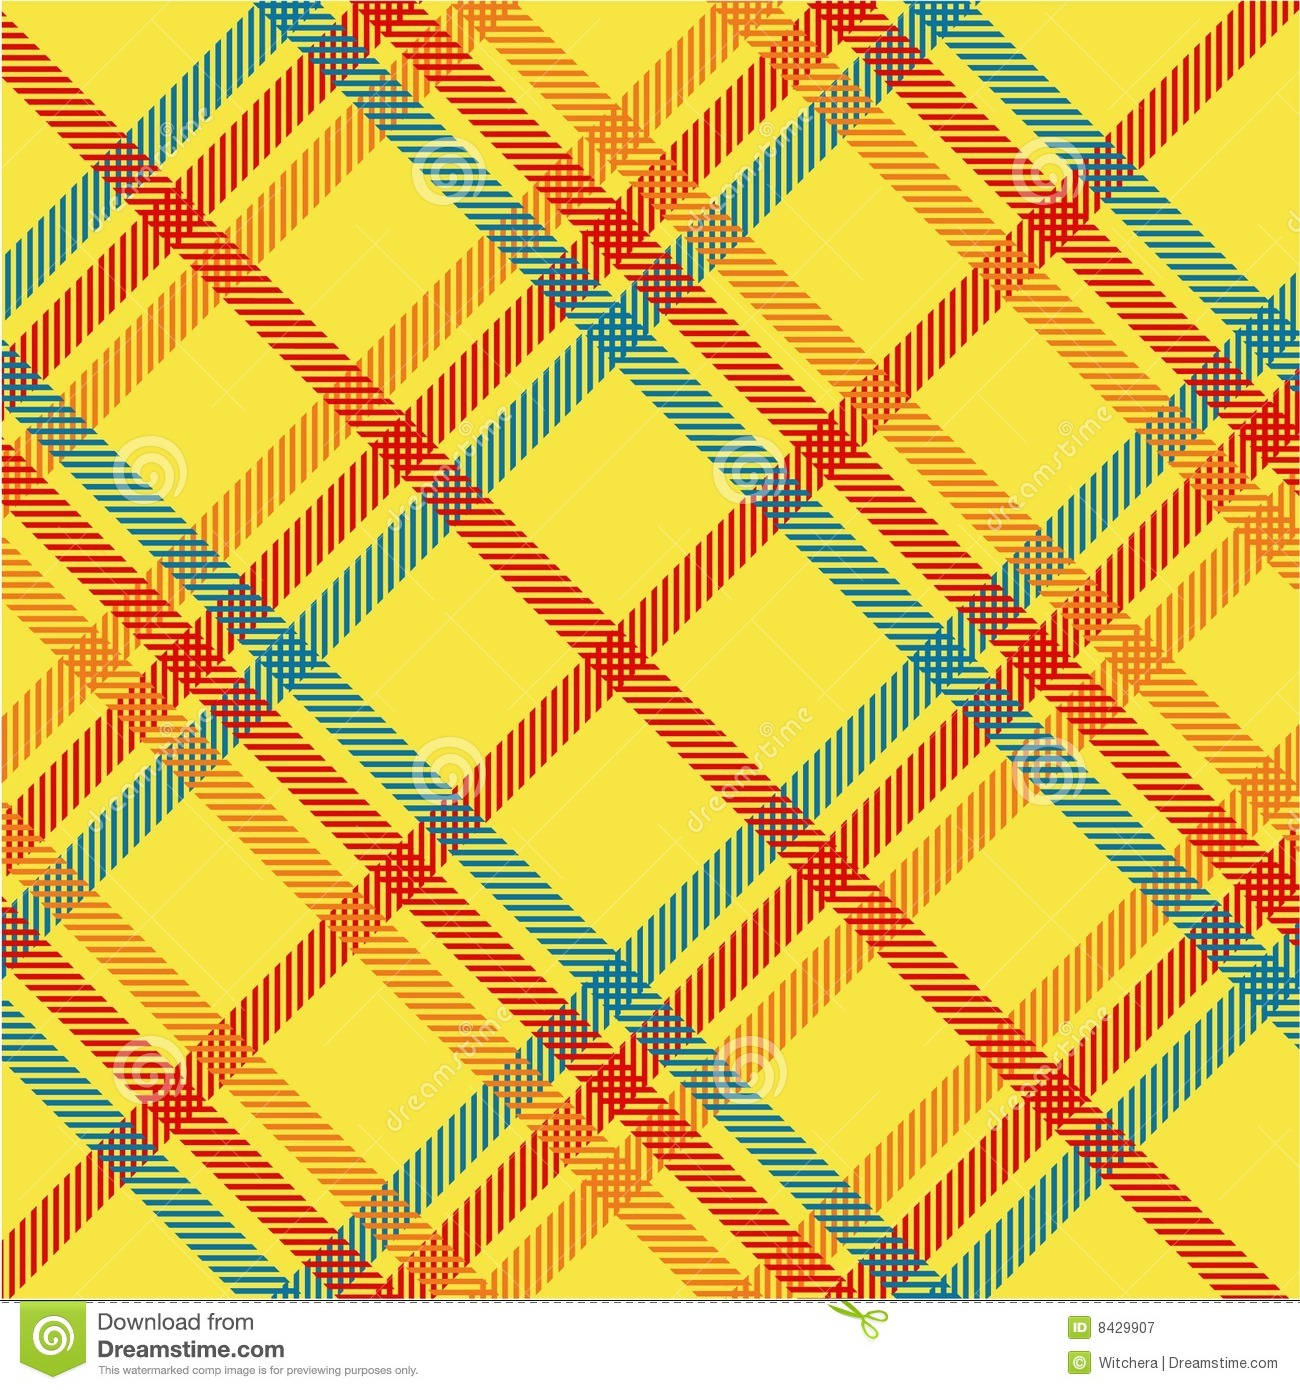 Plaid texture, vector pattern